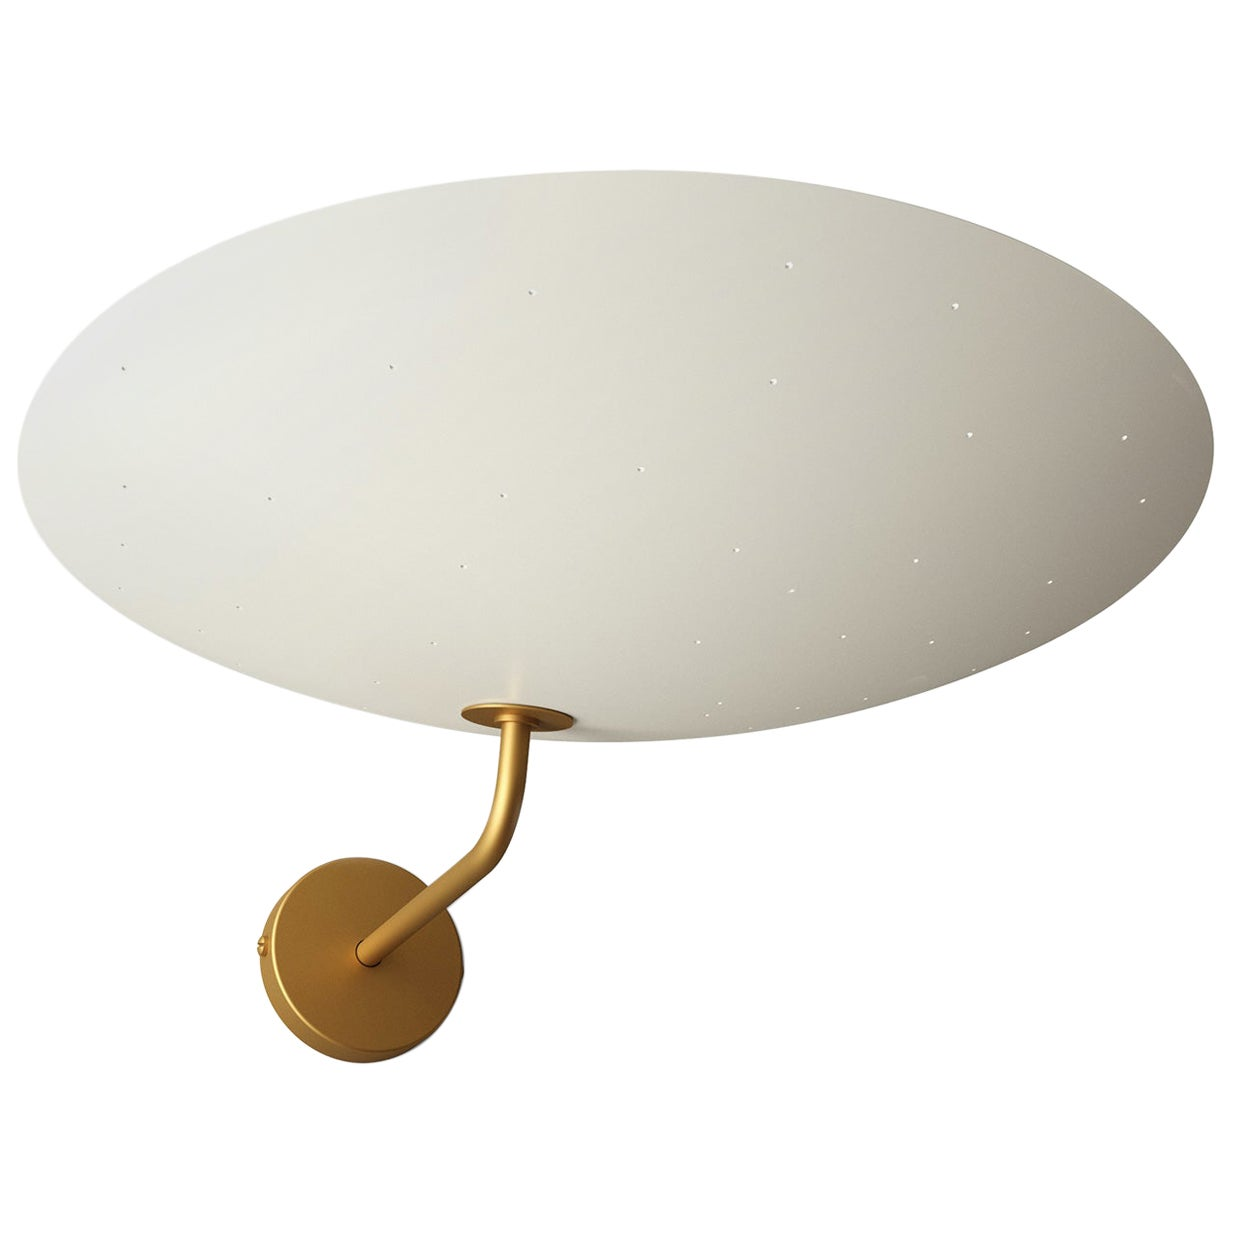 Pierre Disderot Model #2059 Large Perforated Wall Lamp in White & Brushed Brass